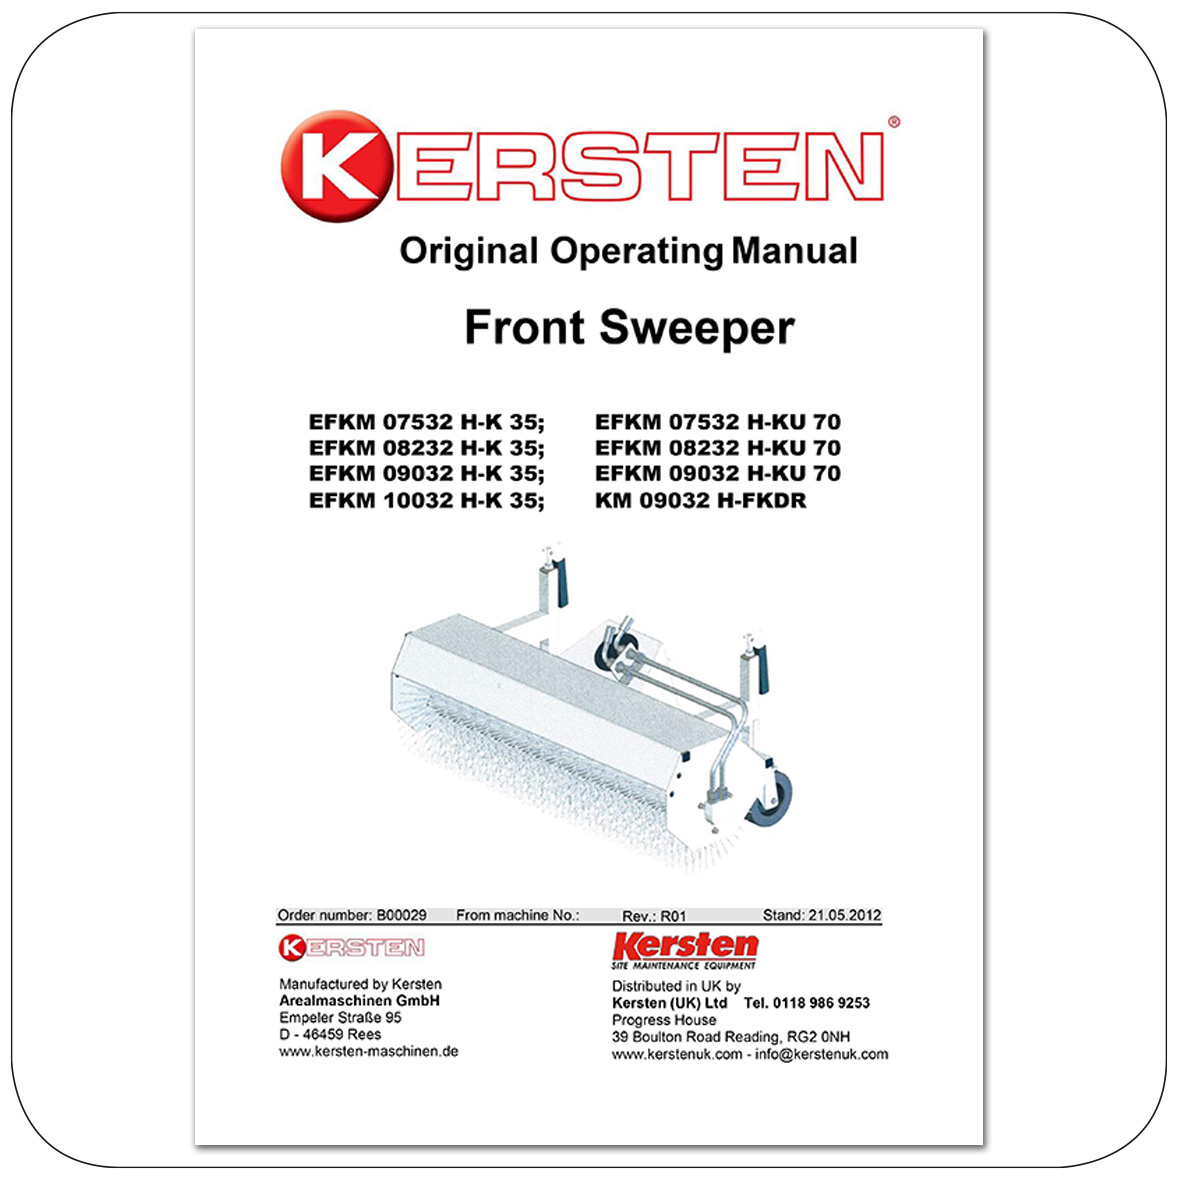 Instruction Manual Front Sweeper EFKM 07532, EFKM 08232, EFKM 09032, EFKM 10032 - Attachments - B00029